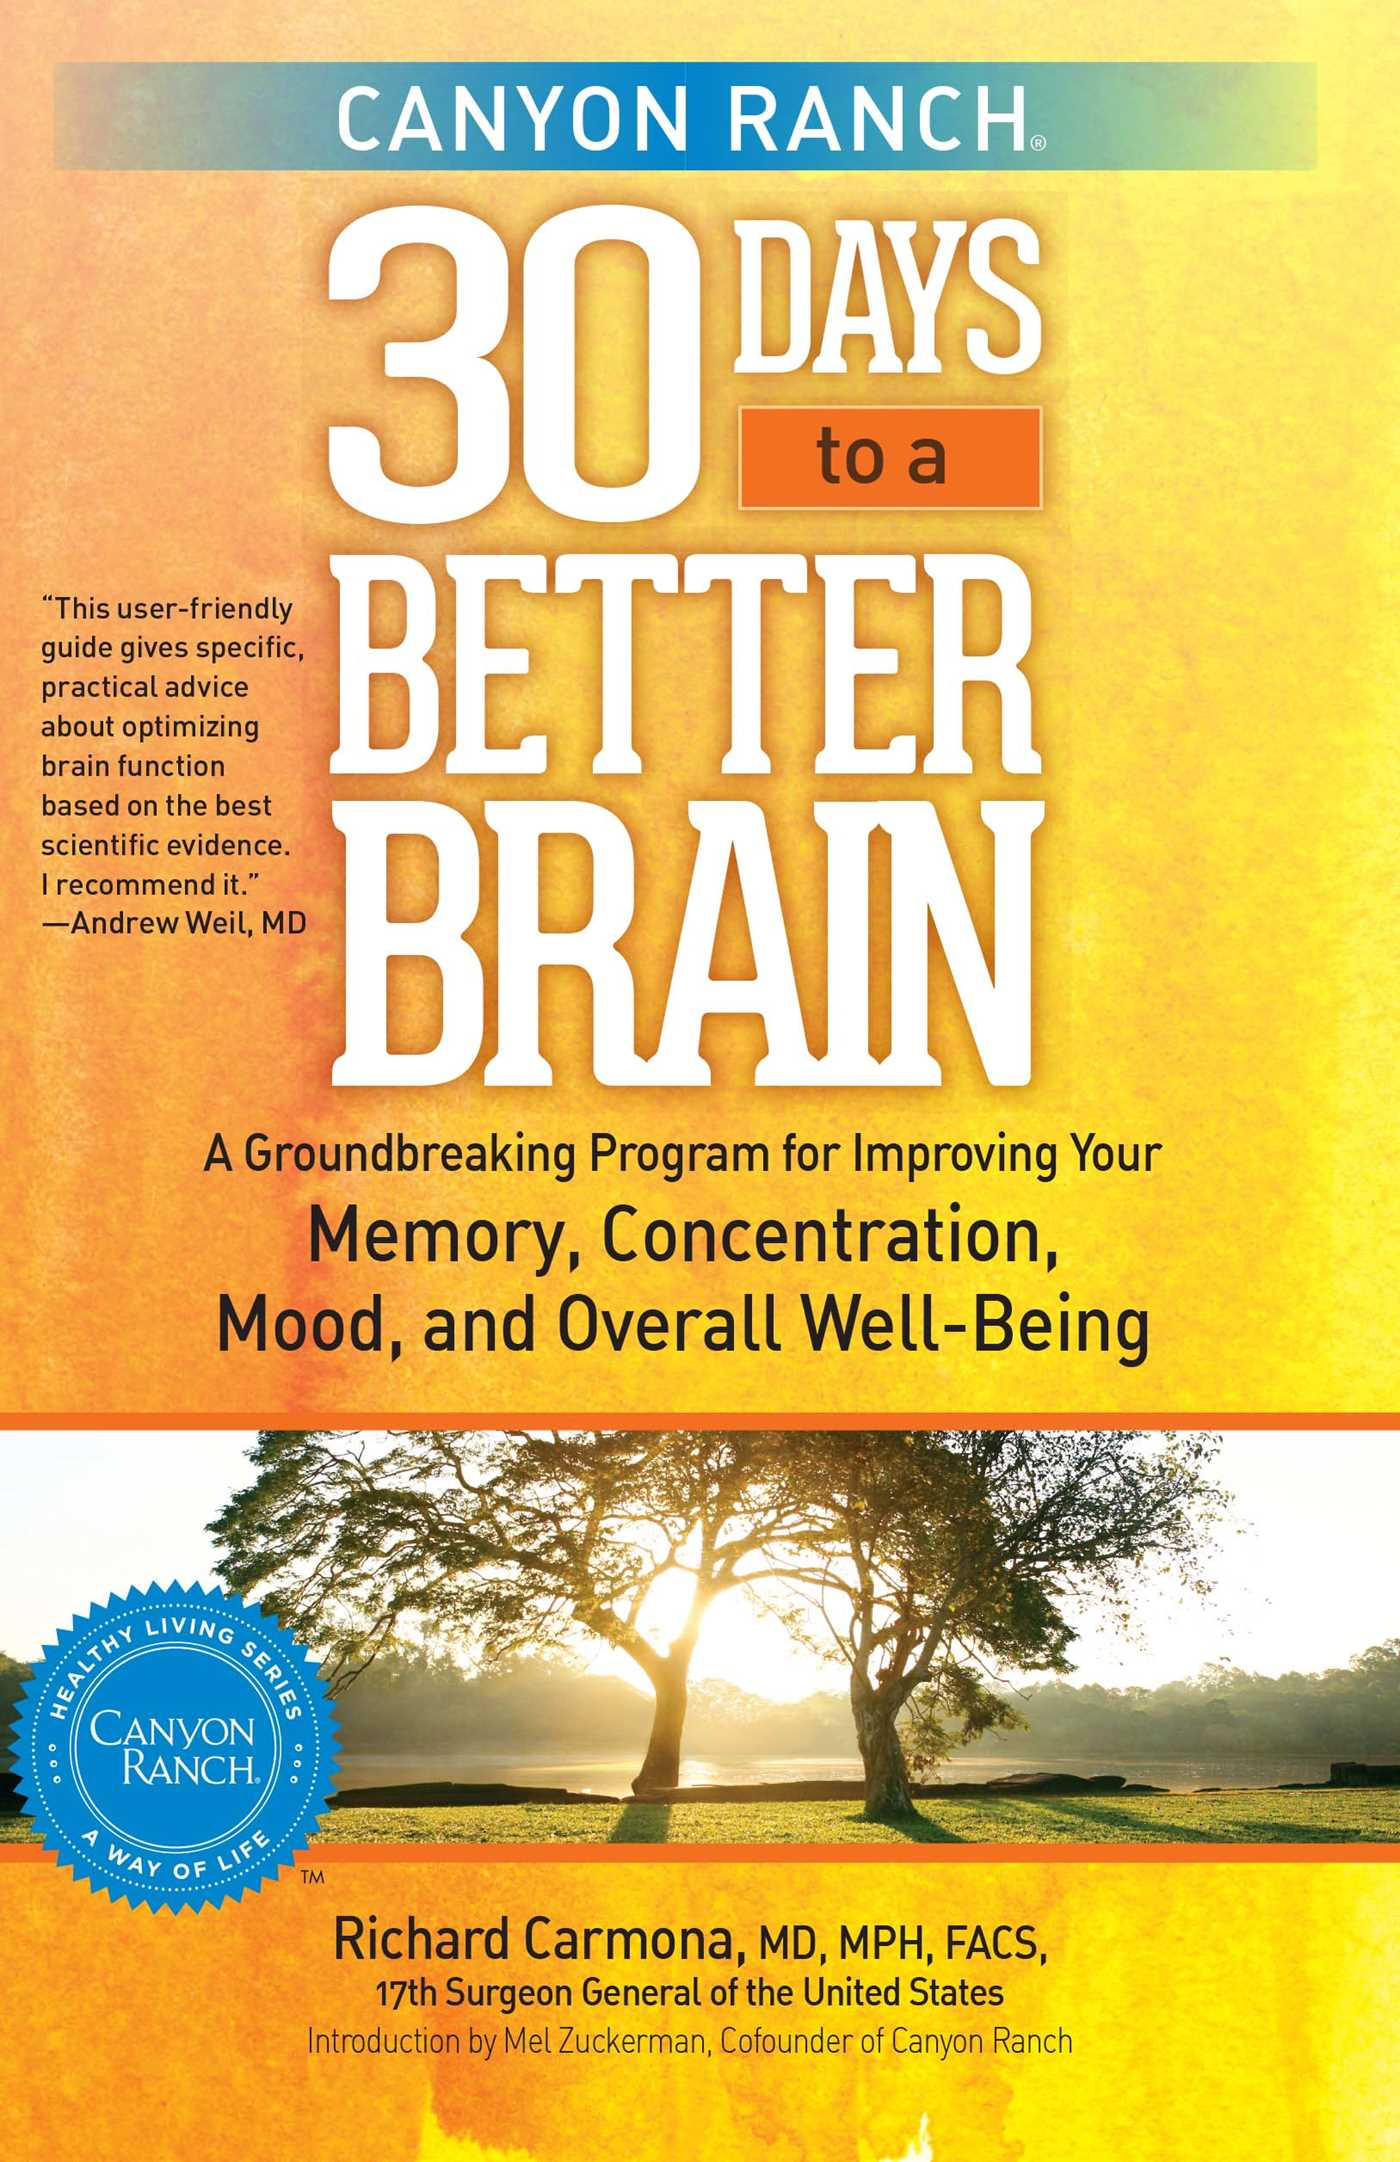 Canyon ranch 30 days to a better brain 9781451643824 hr